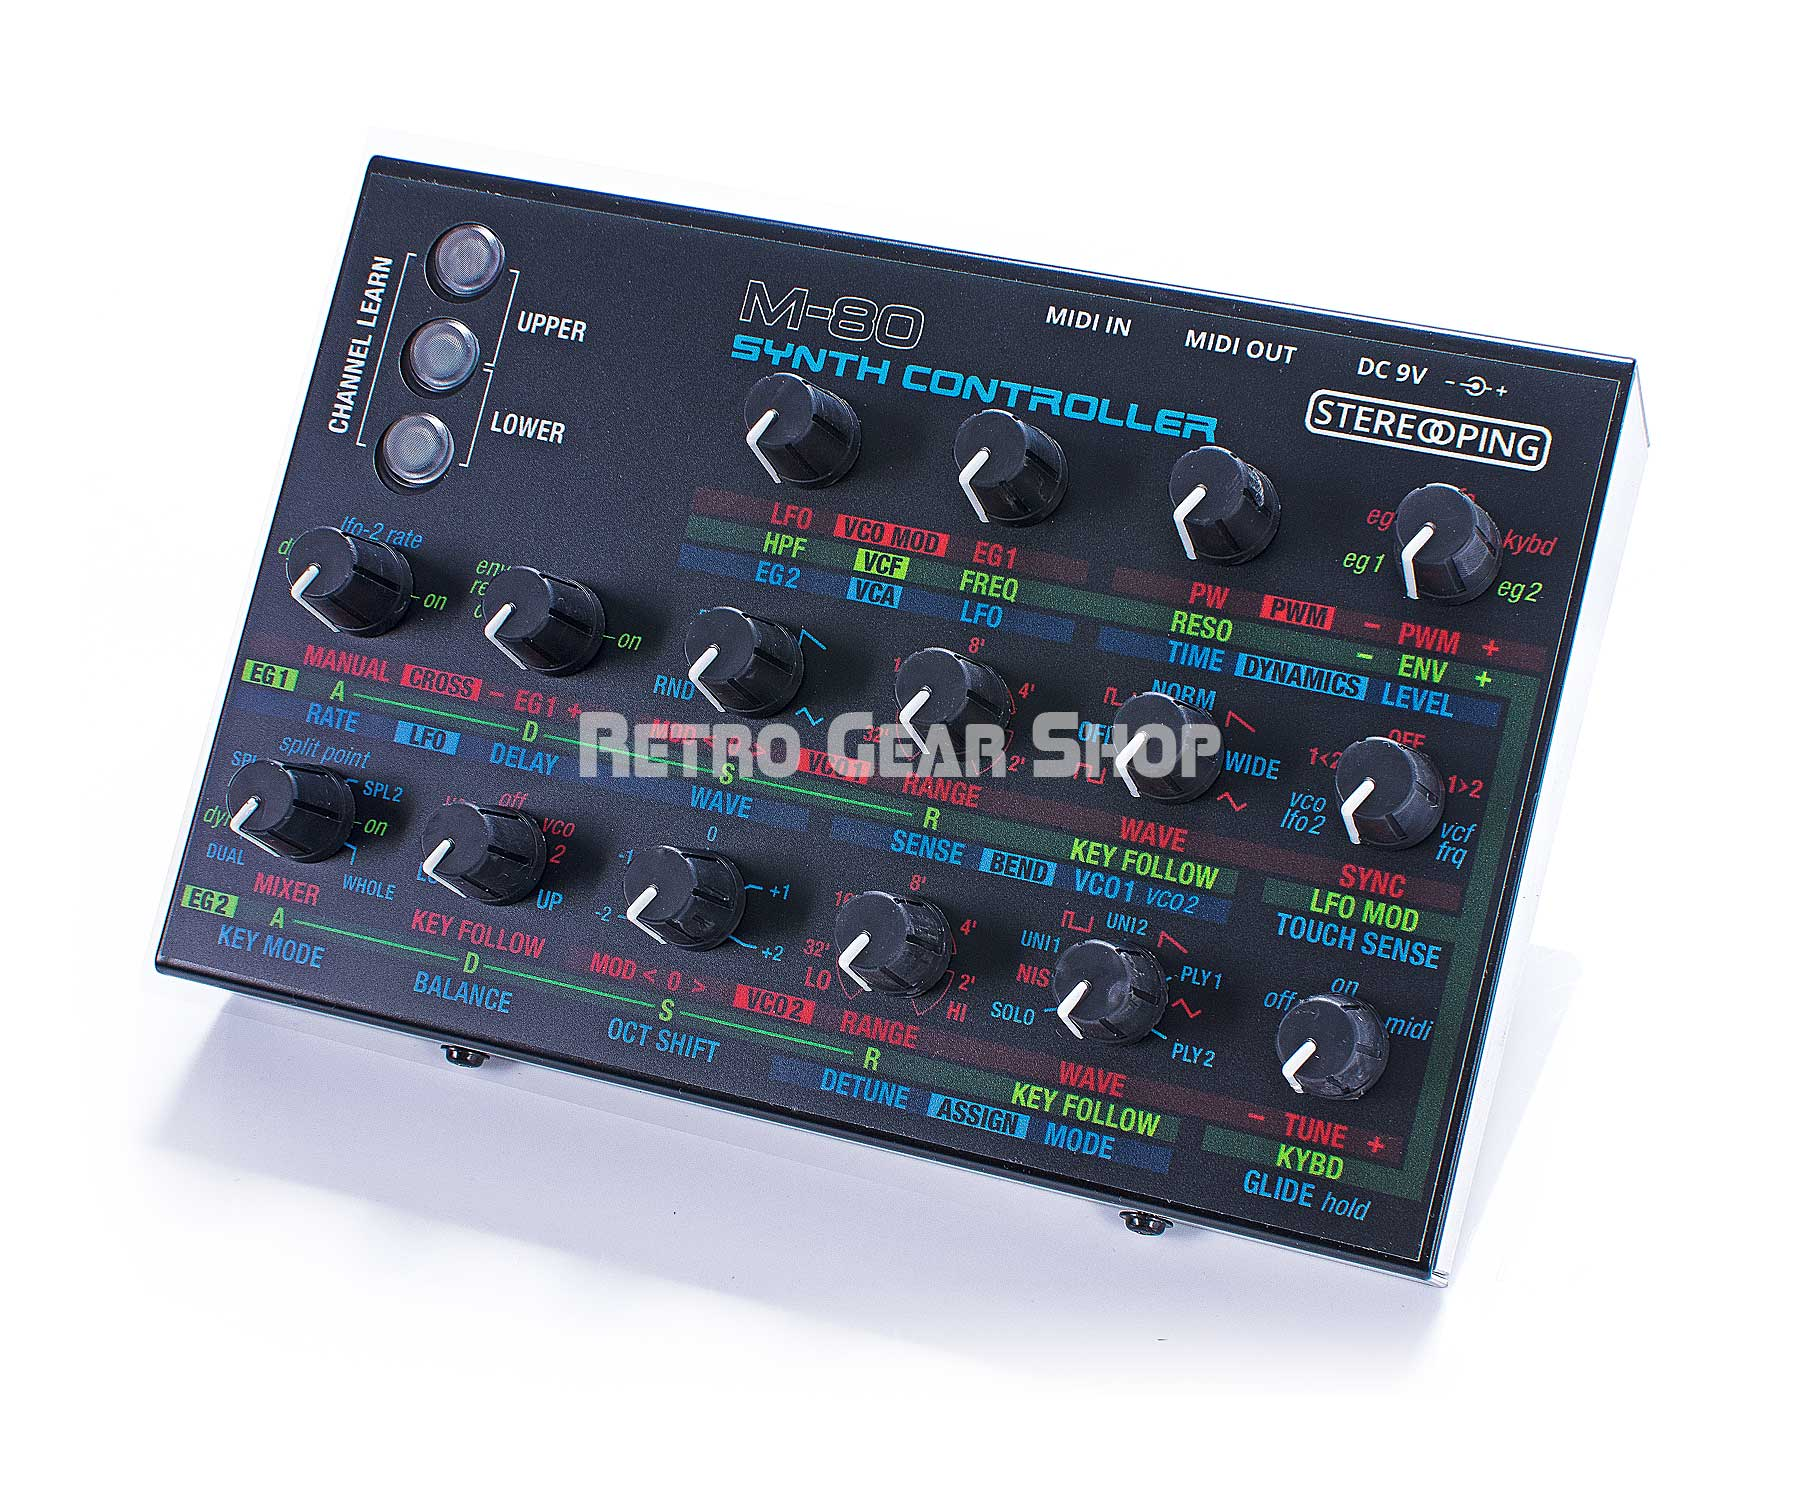 Stereoping CE-1 M-80 Midi Controller for Roland MKS-80